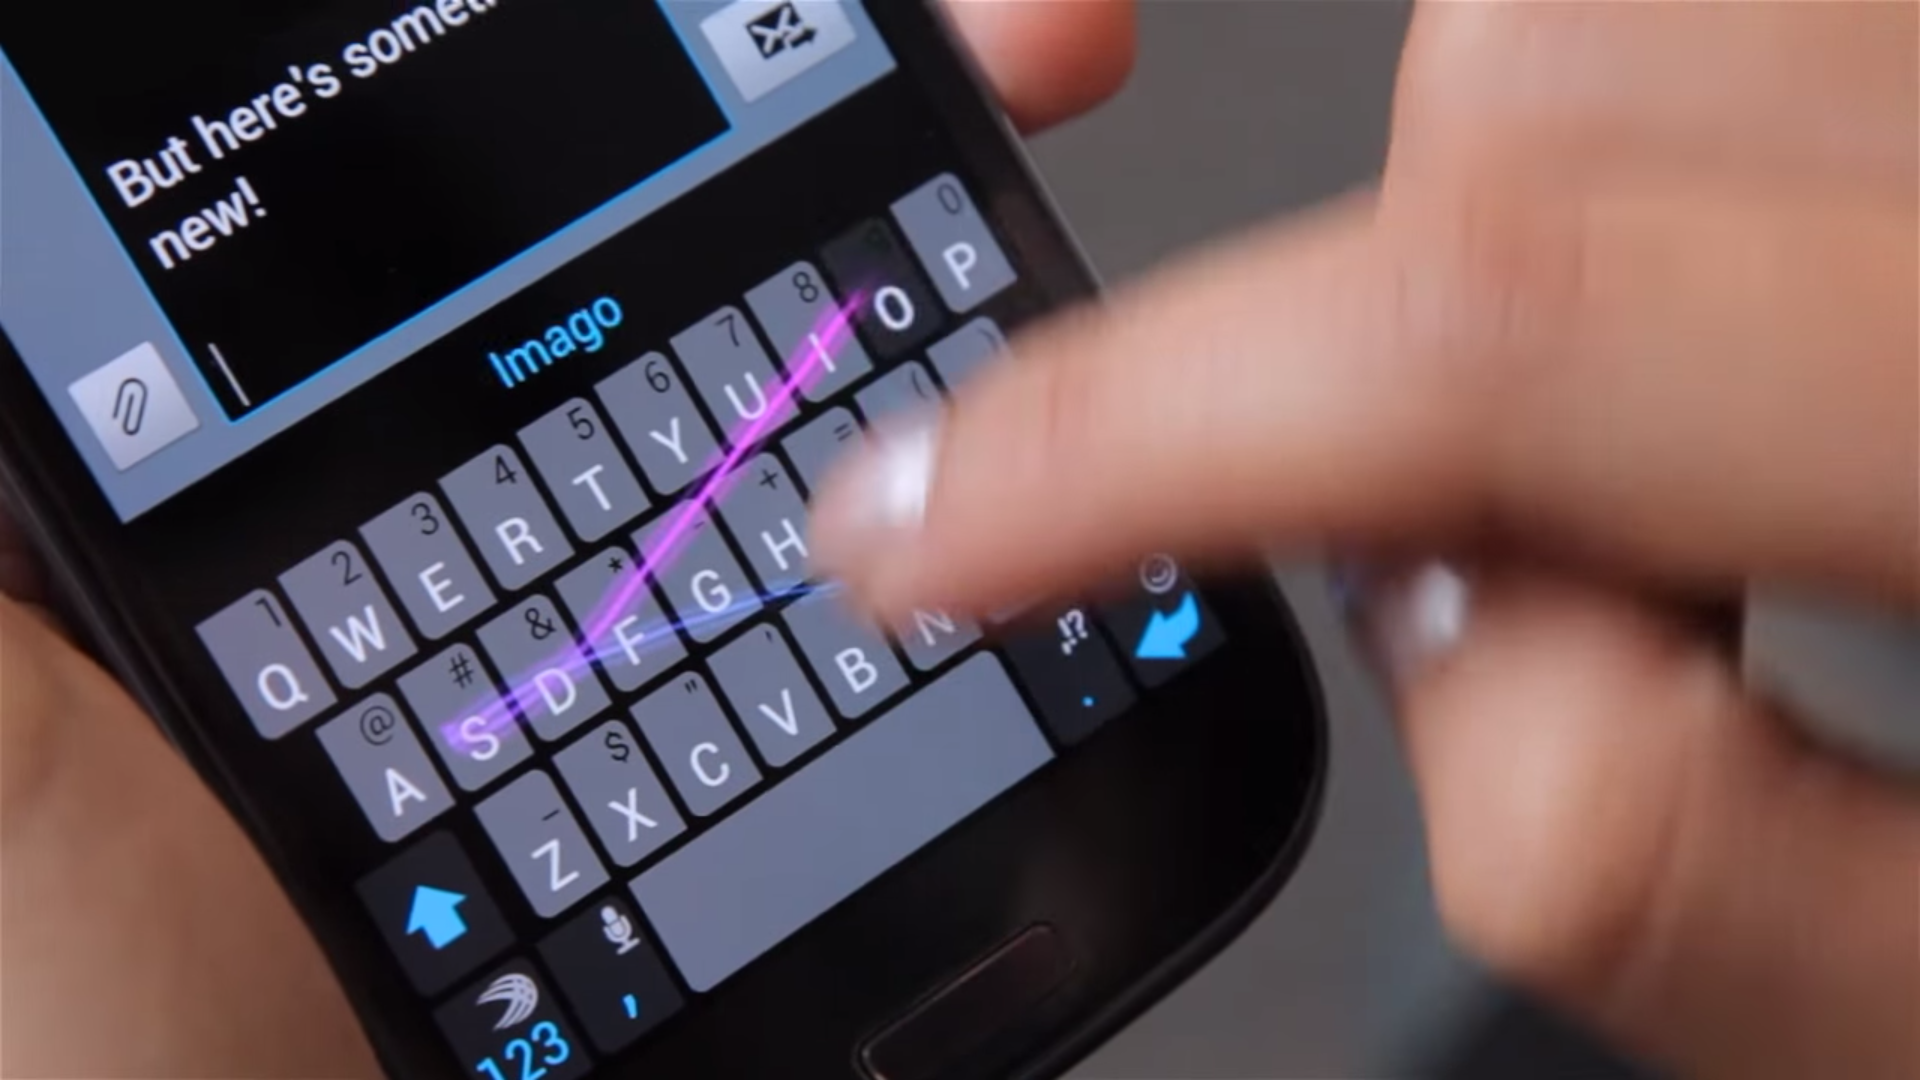 A frame from a SwiftKey instructional video